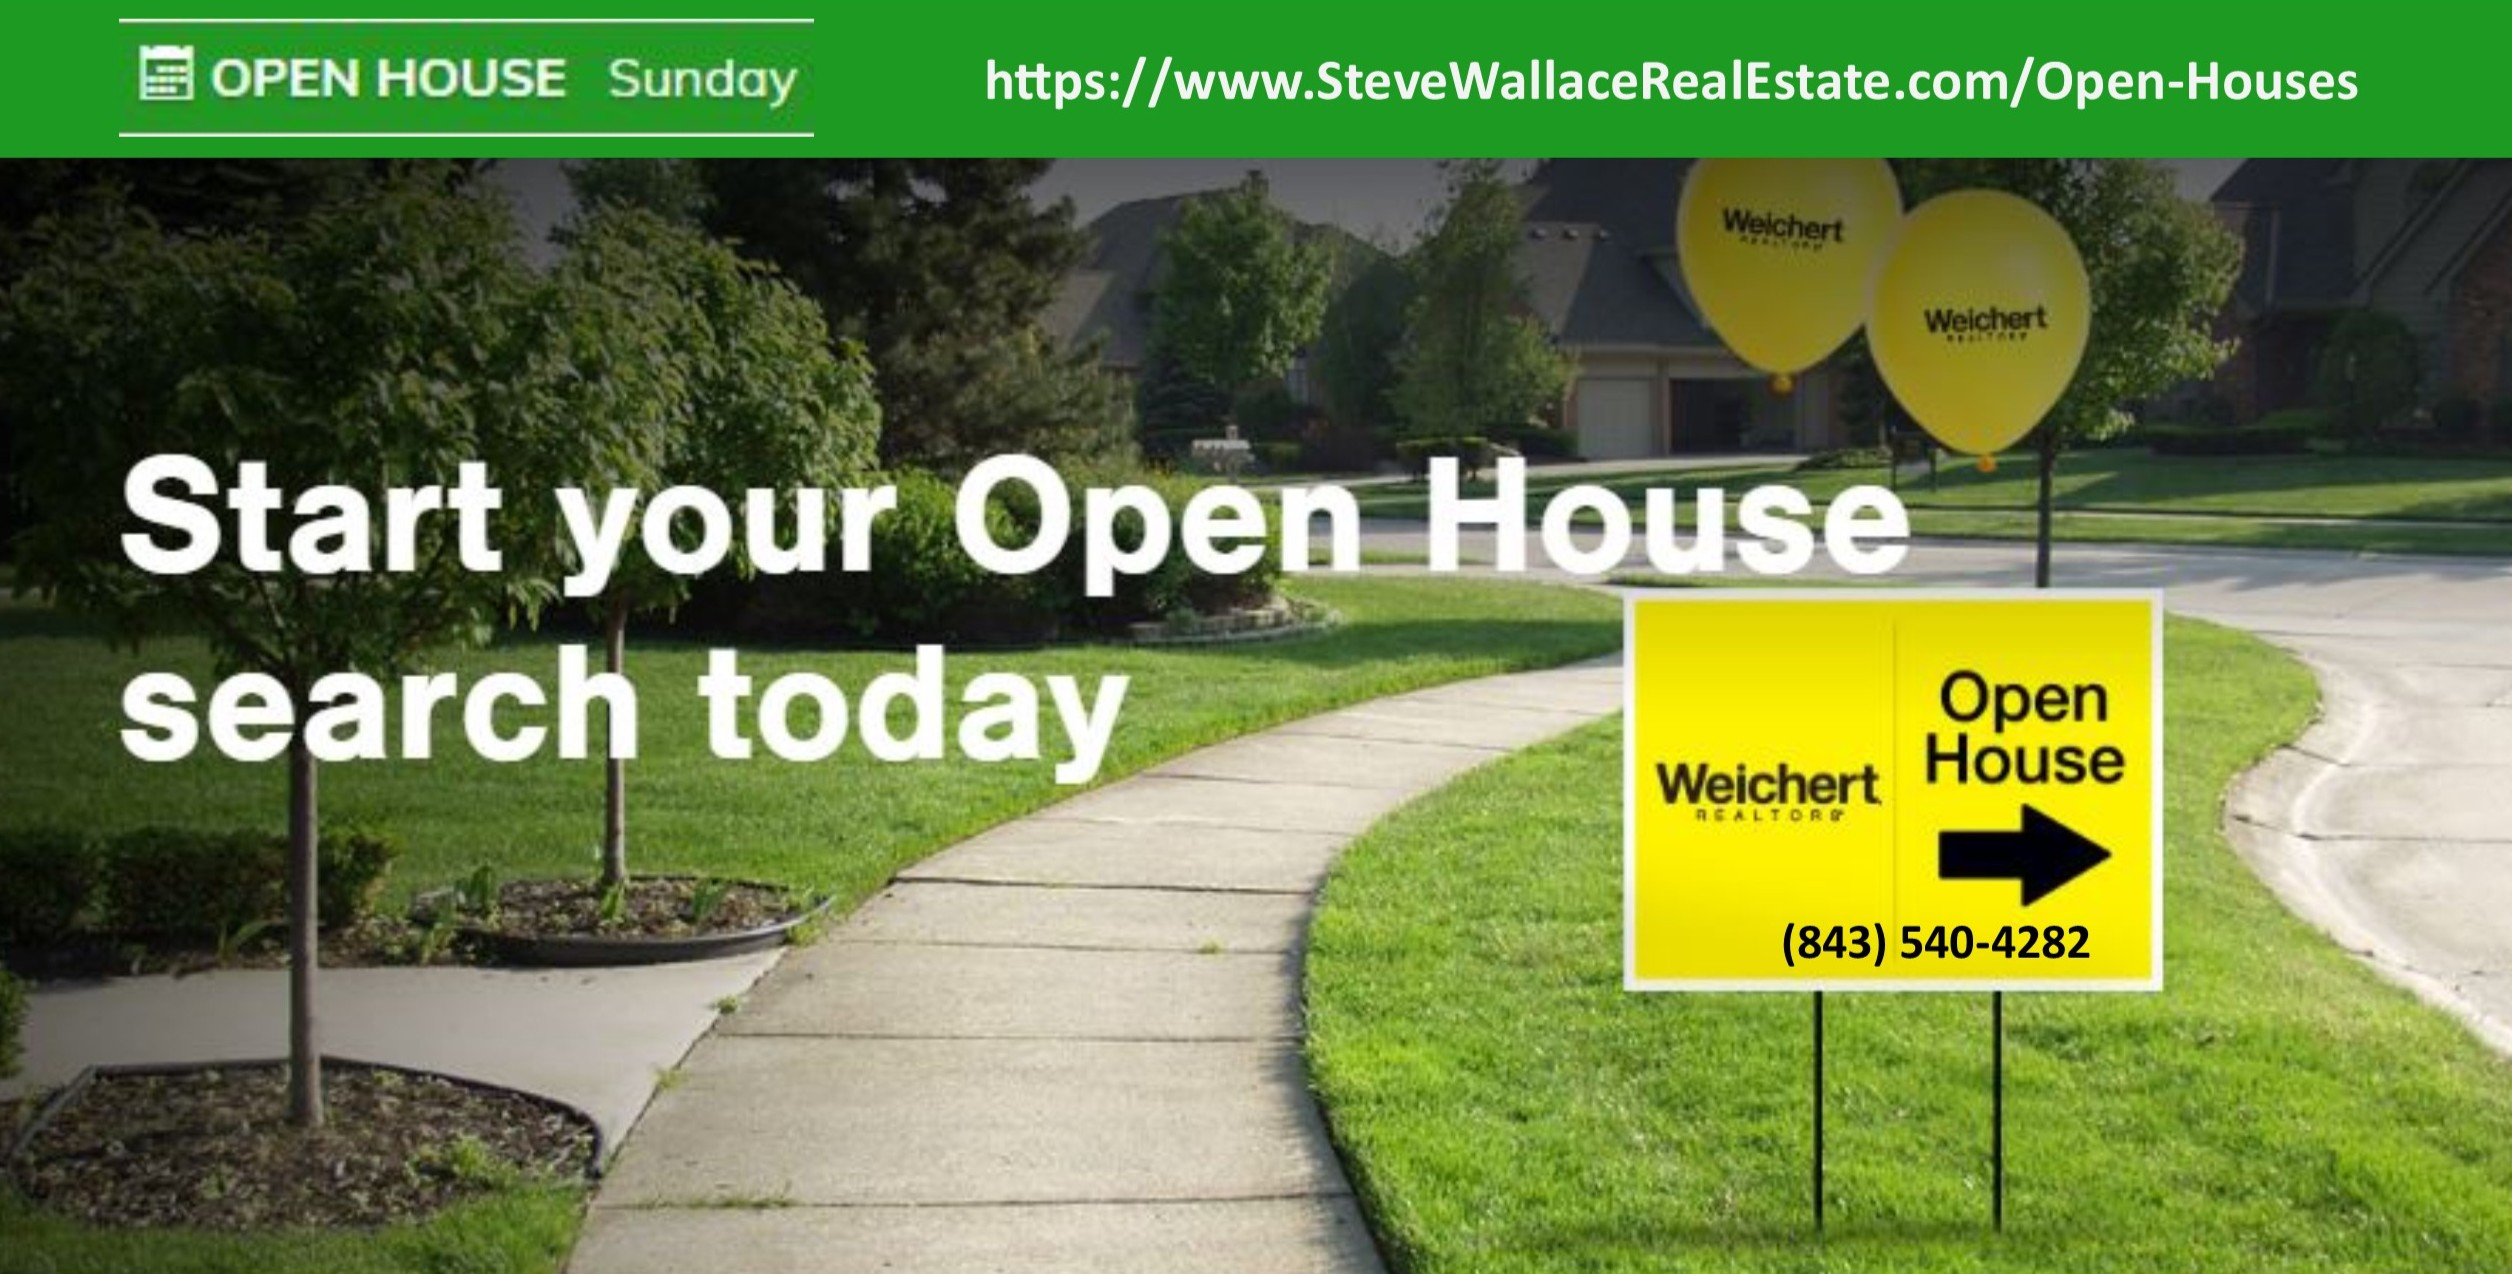 Open Houses, Bluffton, South Carolina, Sunday, Steve Wallace, Hosted